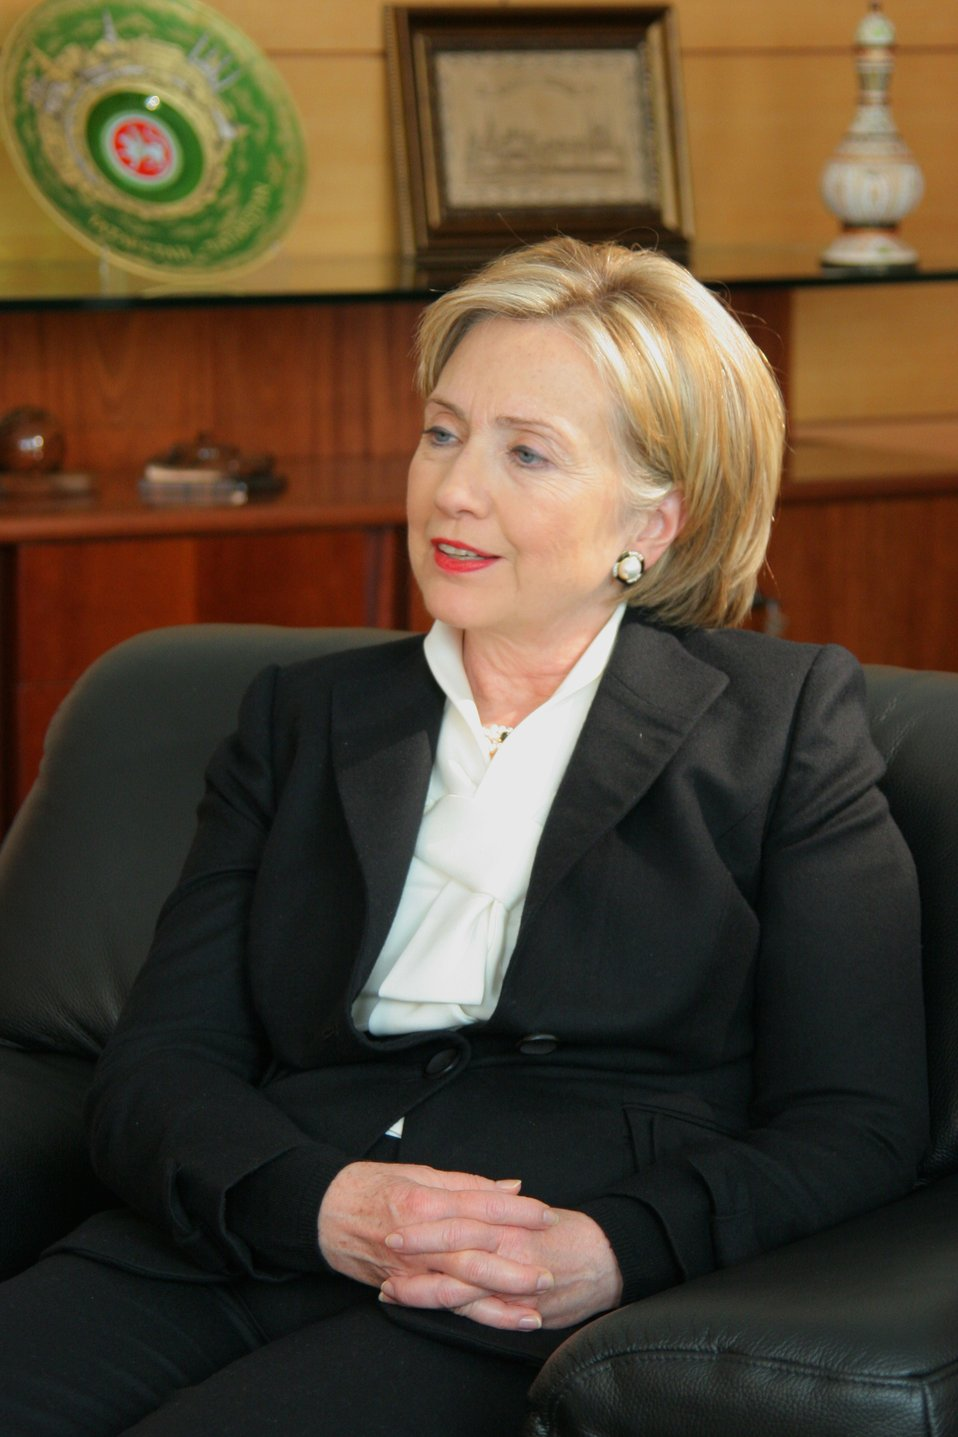 Secretary Clinton Answers Questions